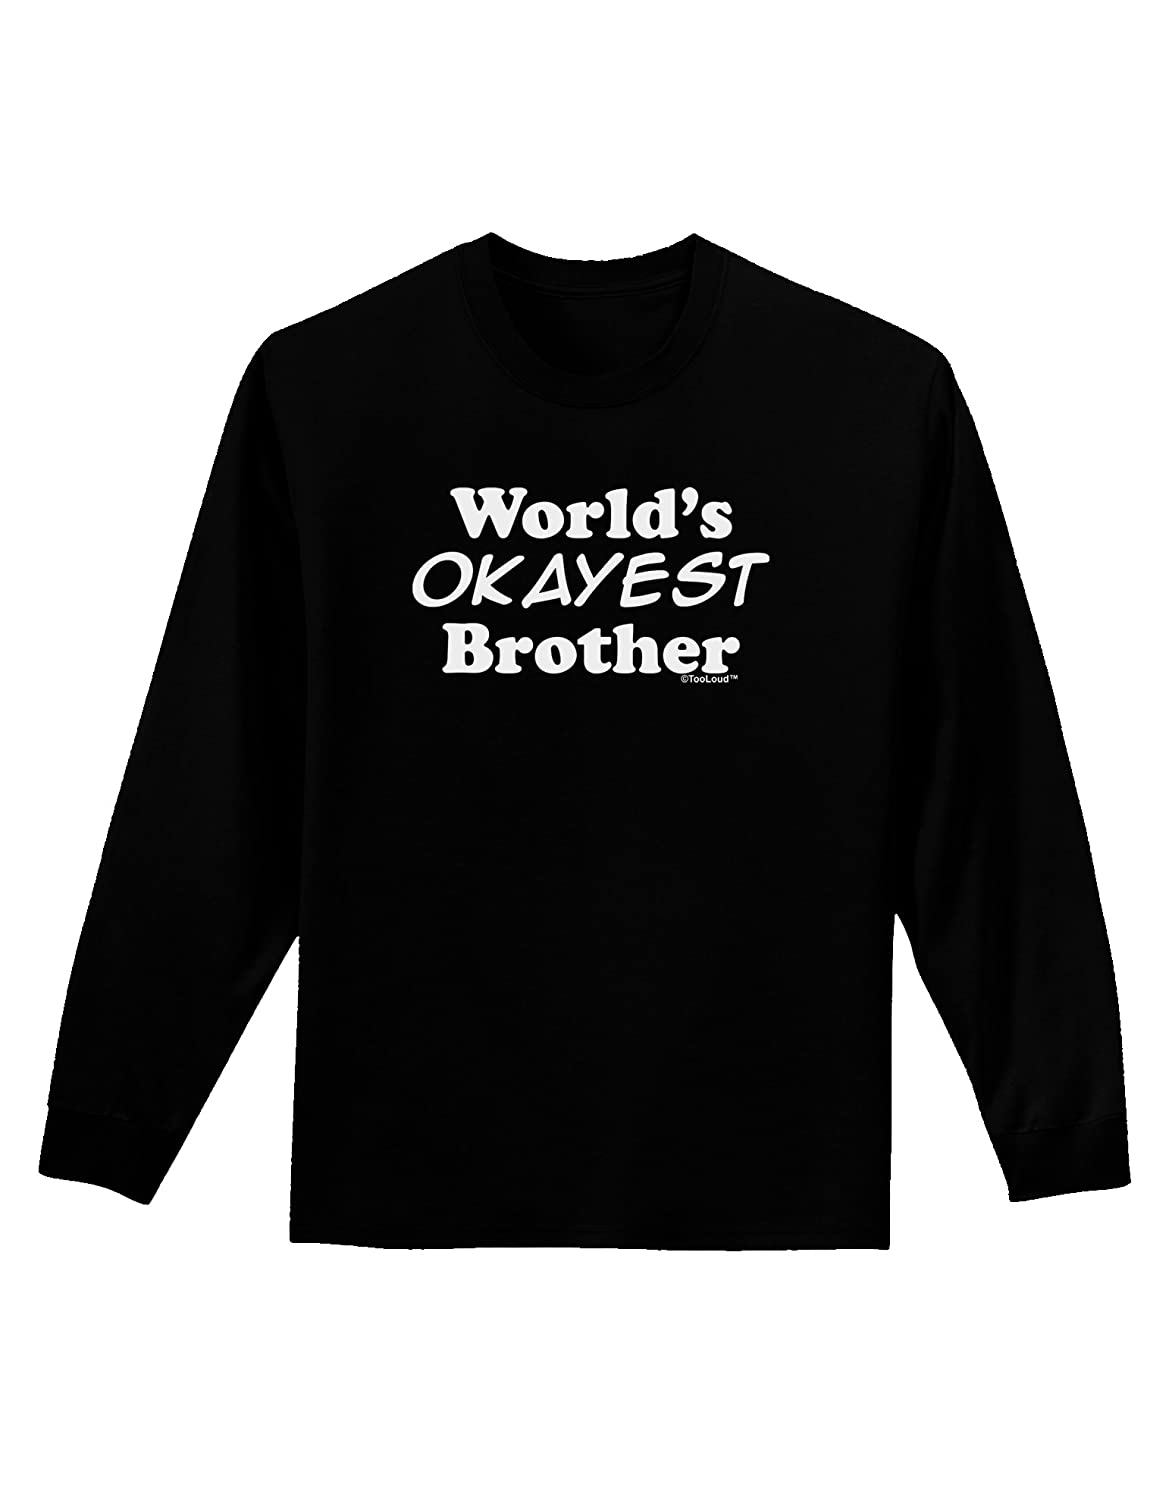 63c45010f571 Amazon.com  TOOLOUD World s Okayest Brother Text Adult Long Sleeve Dark T- Shirt  Clothing